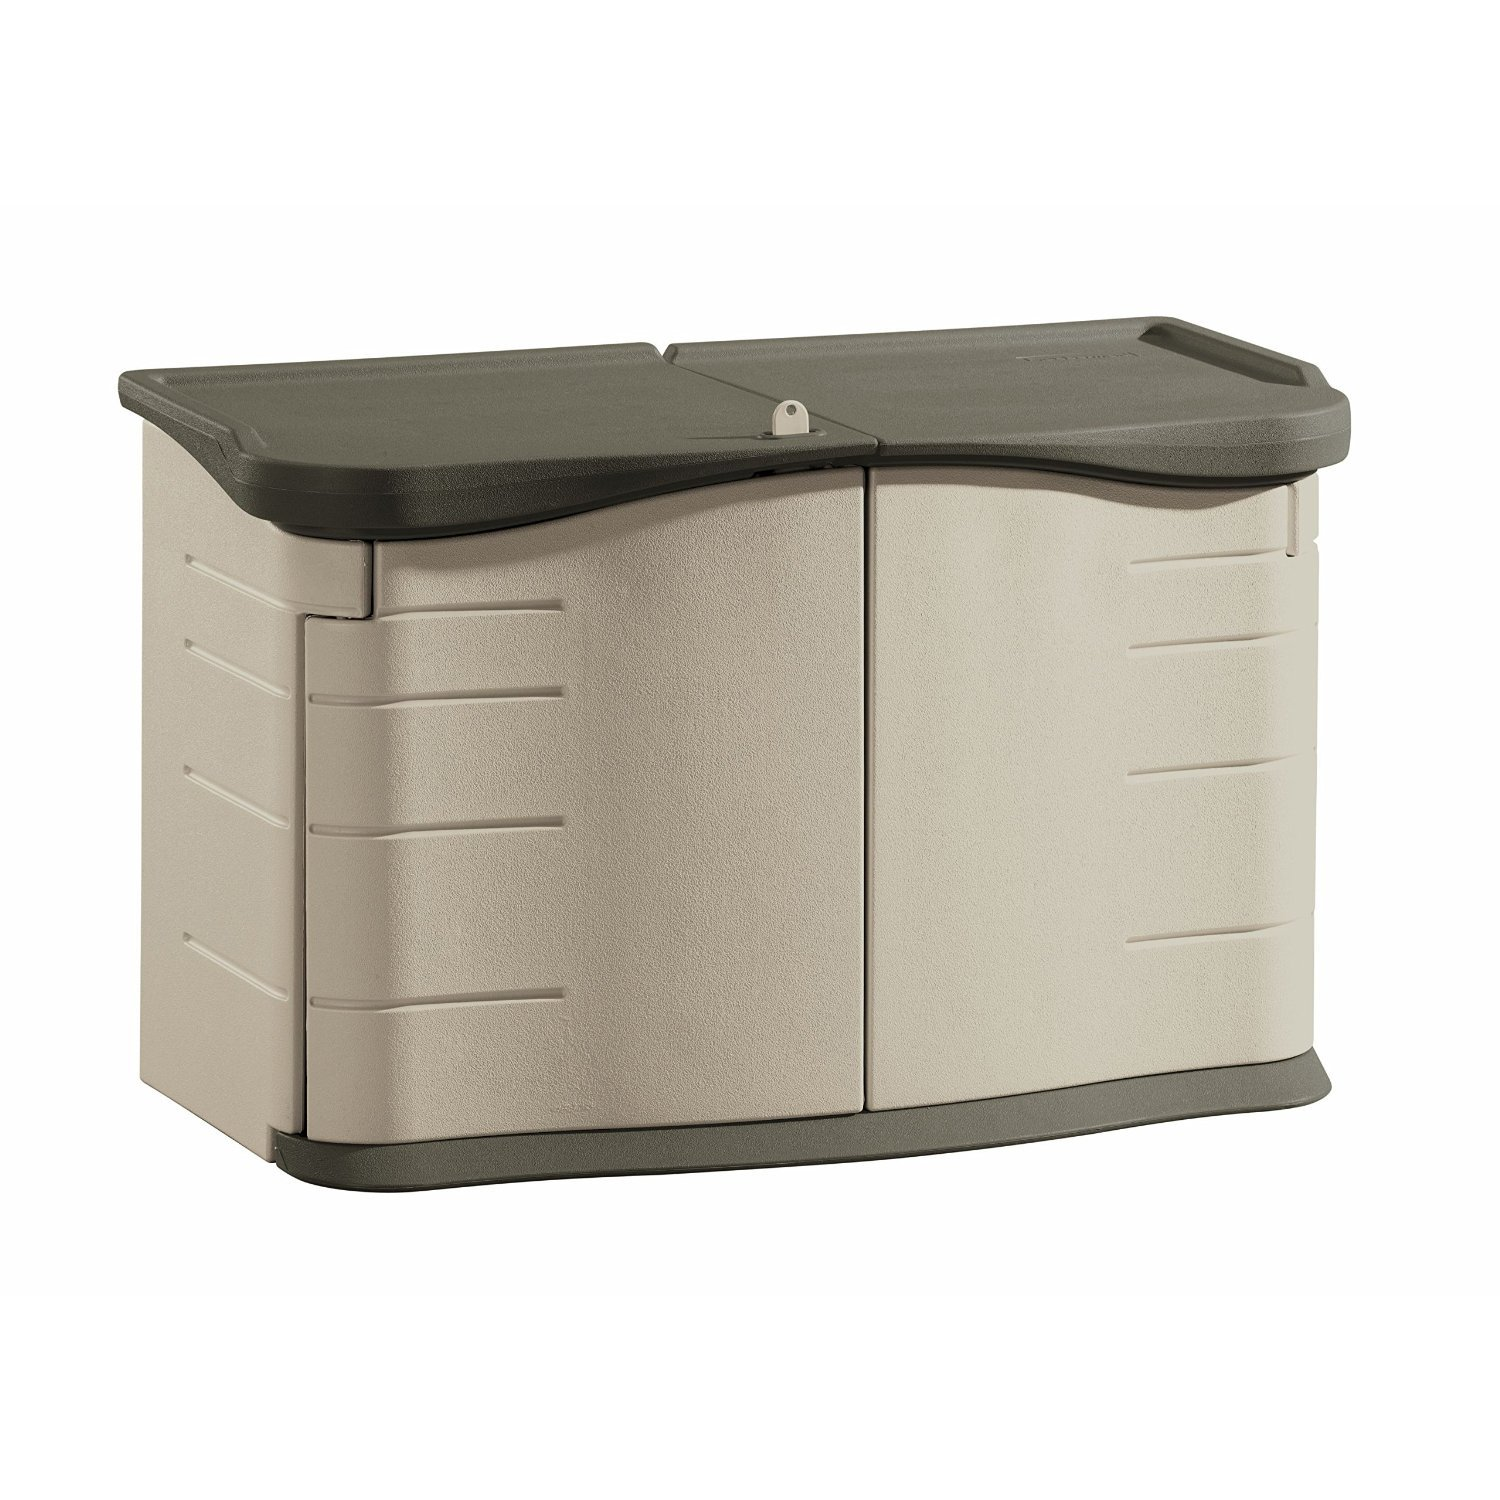 Delicieux Amazon.com : Rubbermaid Outdoor Split Lid Storage Shed, 18 Cu. Ft.,  Olive/Sandstone (FG375301OLVSS0) : Outdoor Storage Containers : Garden U0026  Outdoor